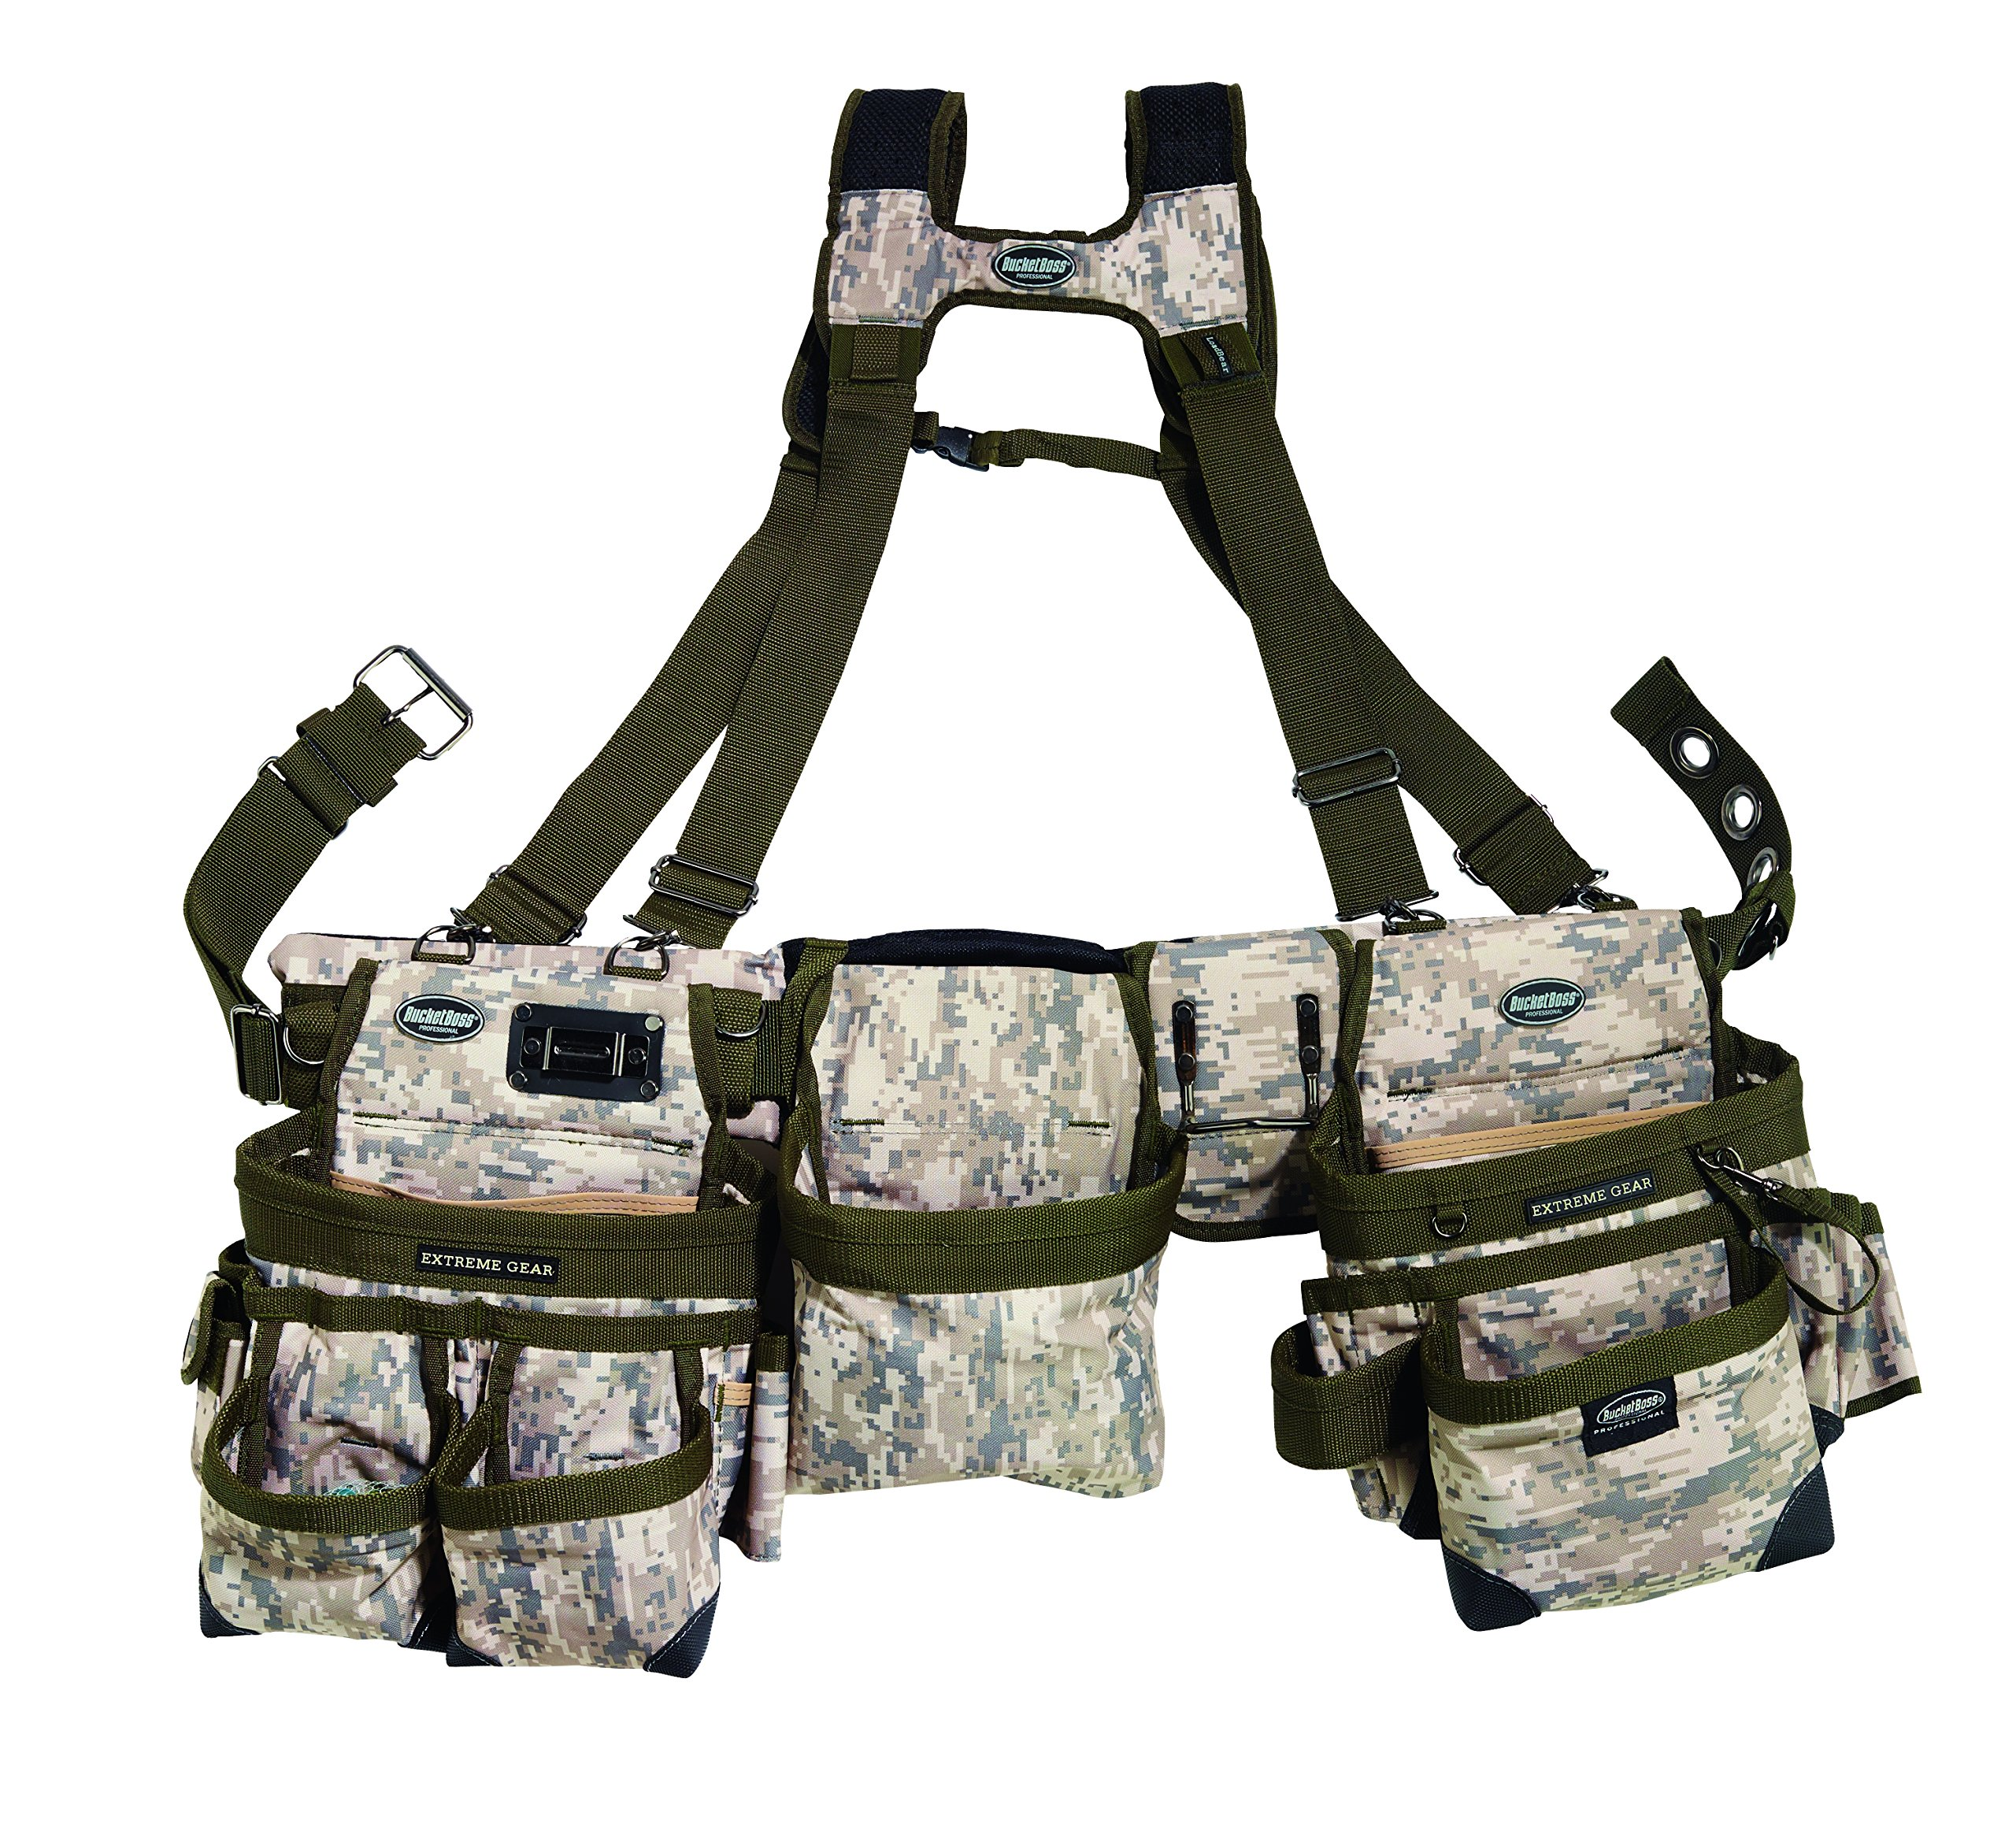 Bucket Boss Bucketboss 55185-DIGC, Three Bag Framers Rig, Digital Camo